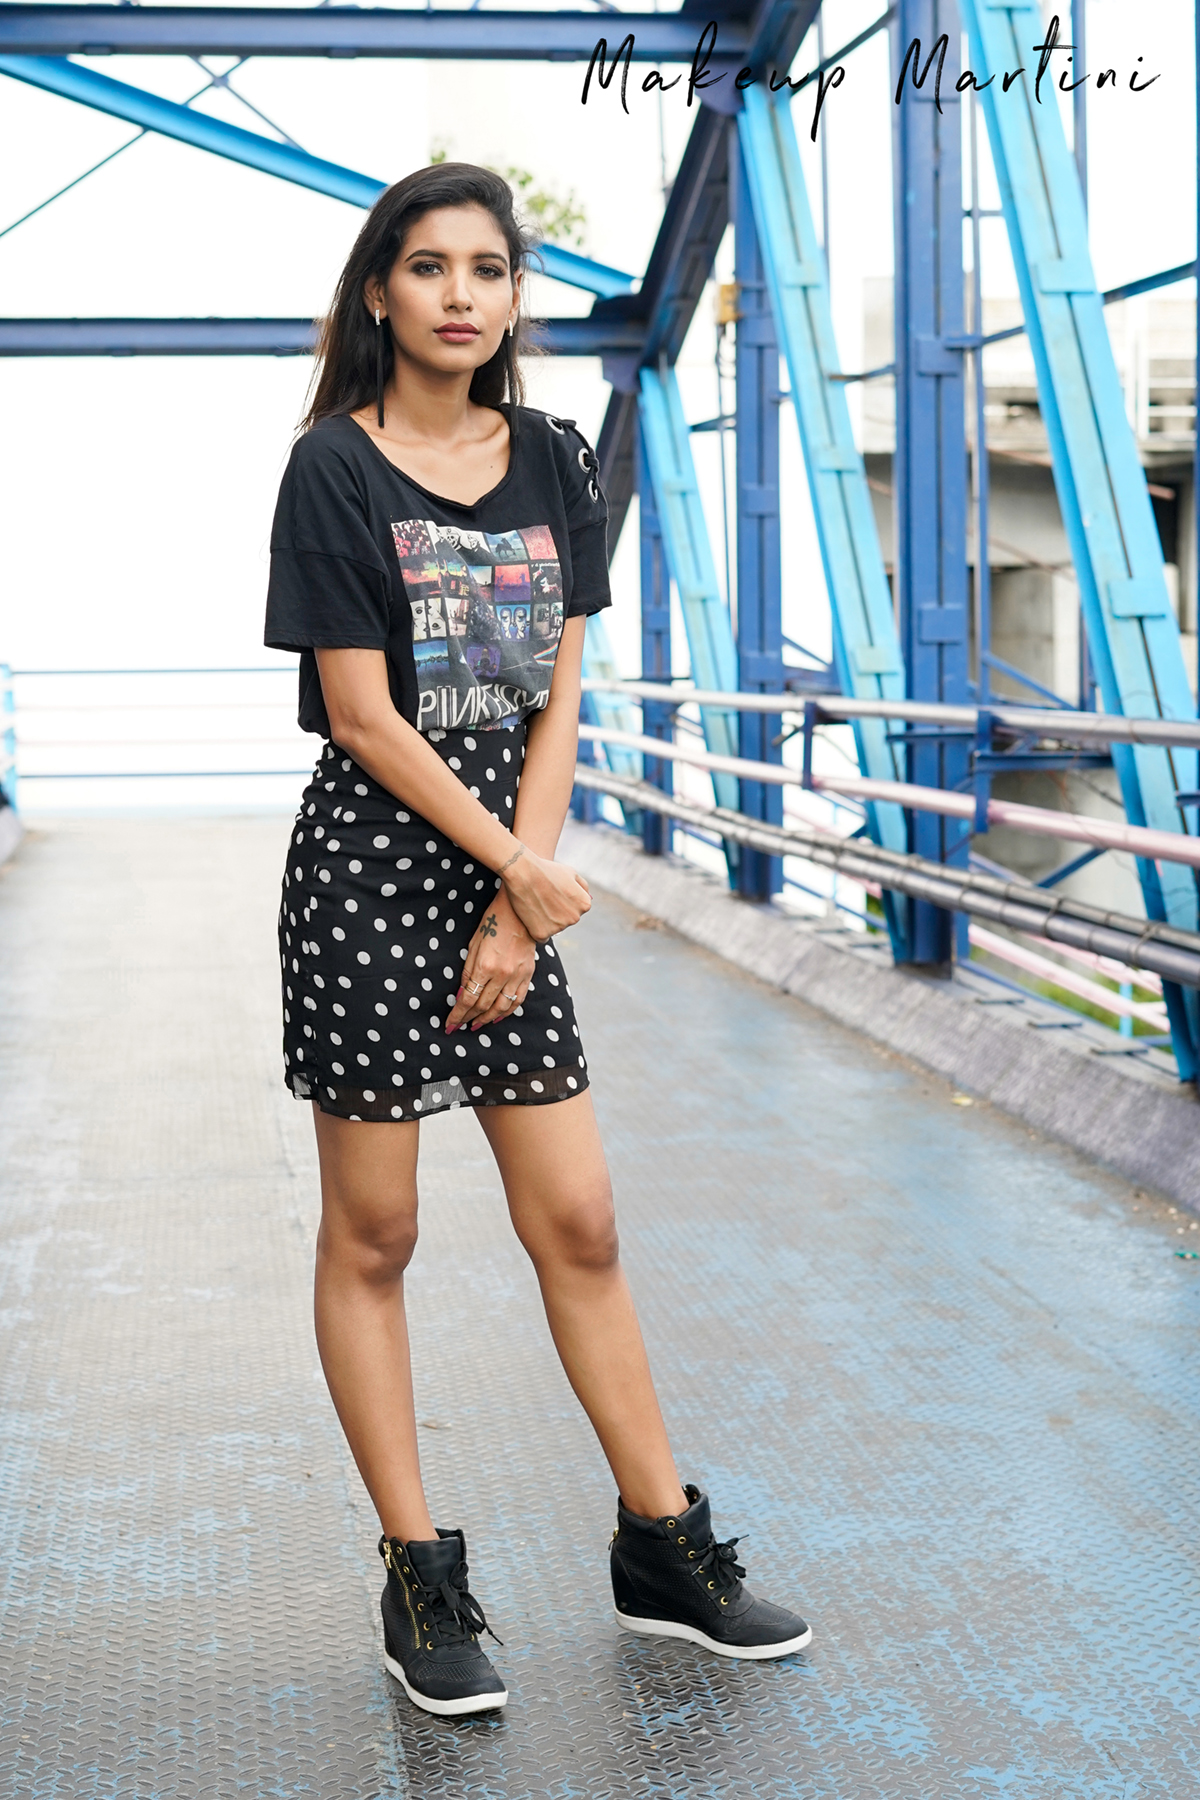 Black Polka Dots Skirt Graphic Tee